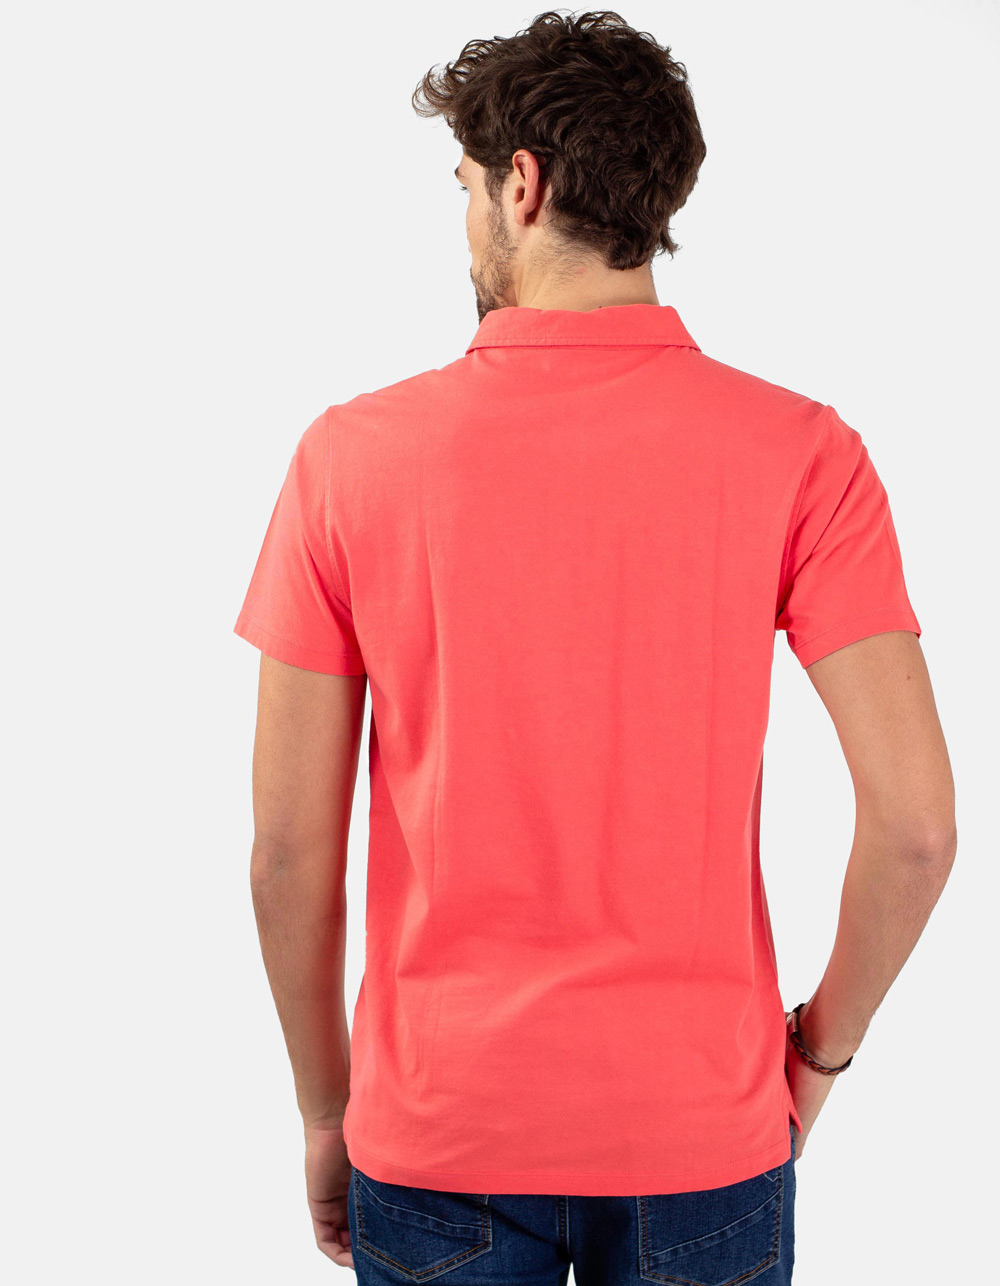 Coral pocket polo shirt - Backside